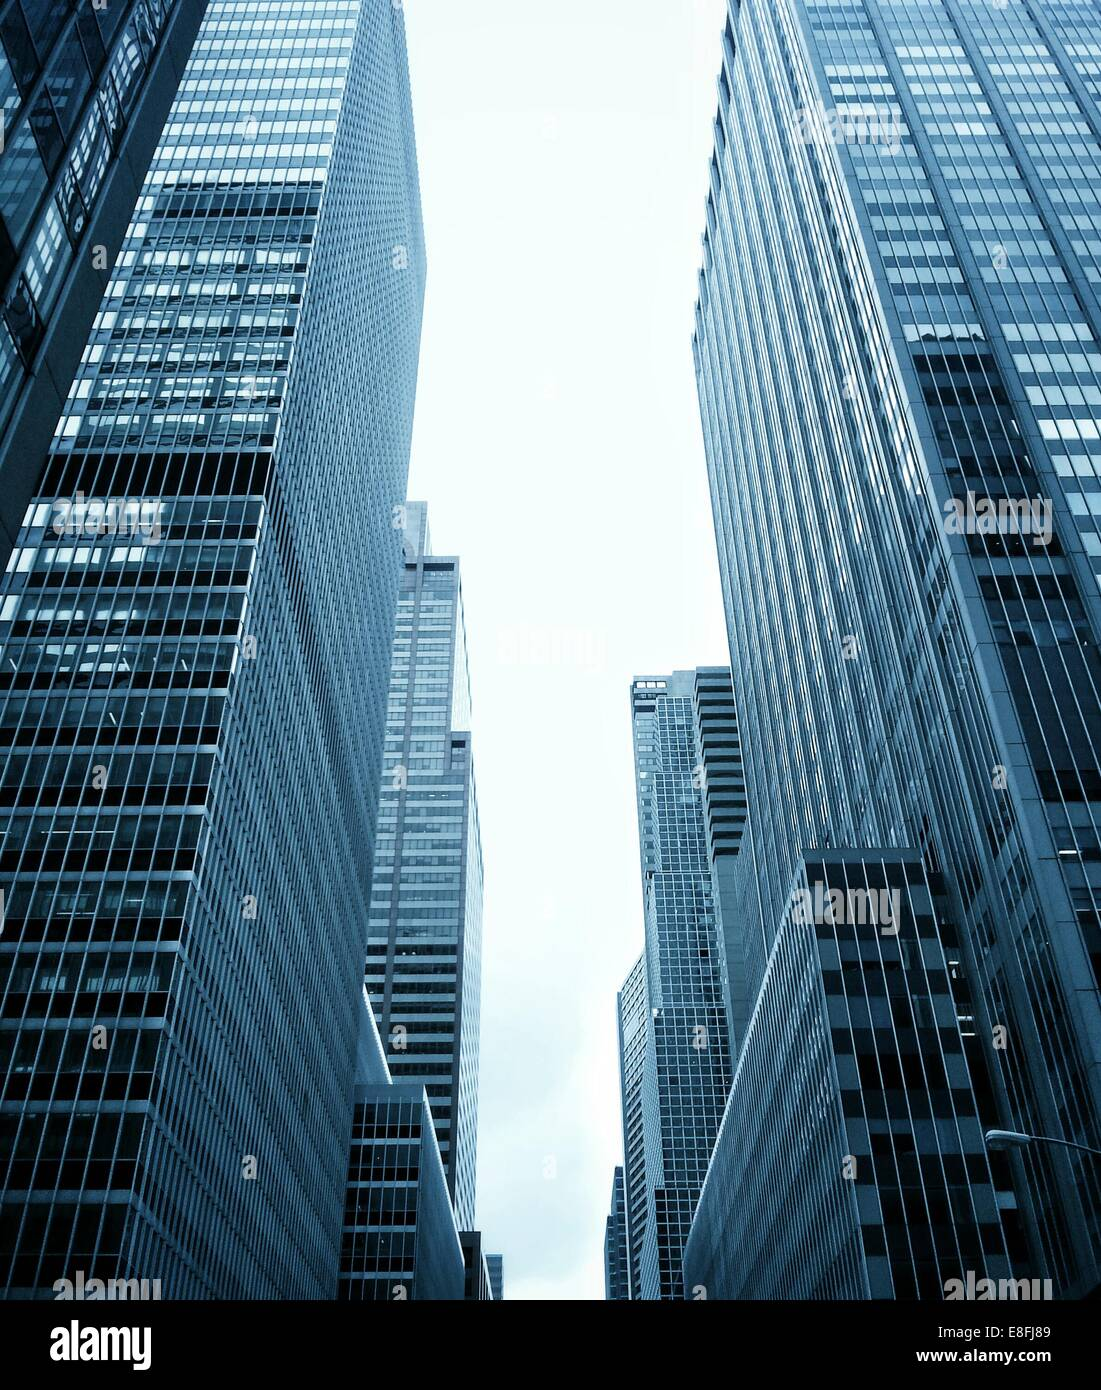 Low angle view of Skyscrapers, Midtown, Manhattan, New York, Amérique, USA Photo Stock